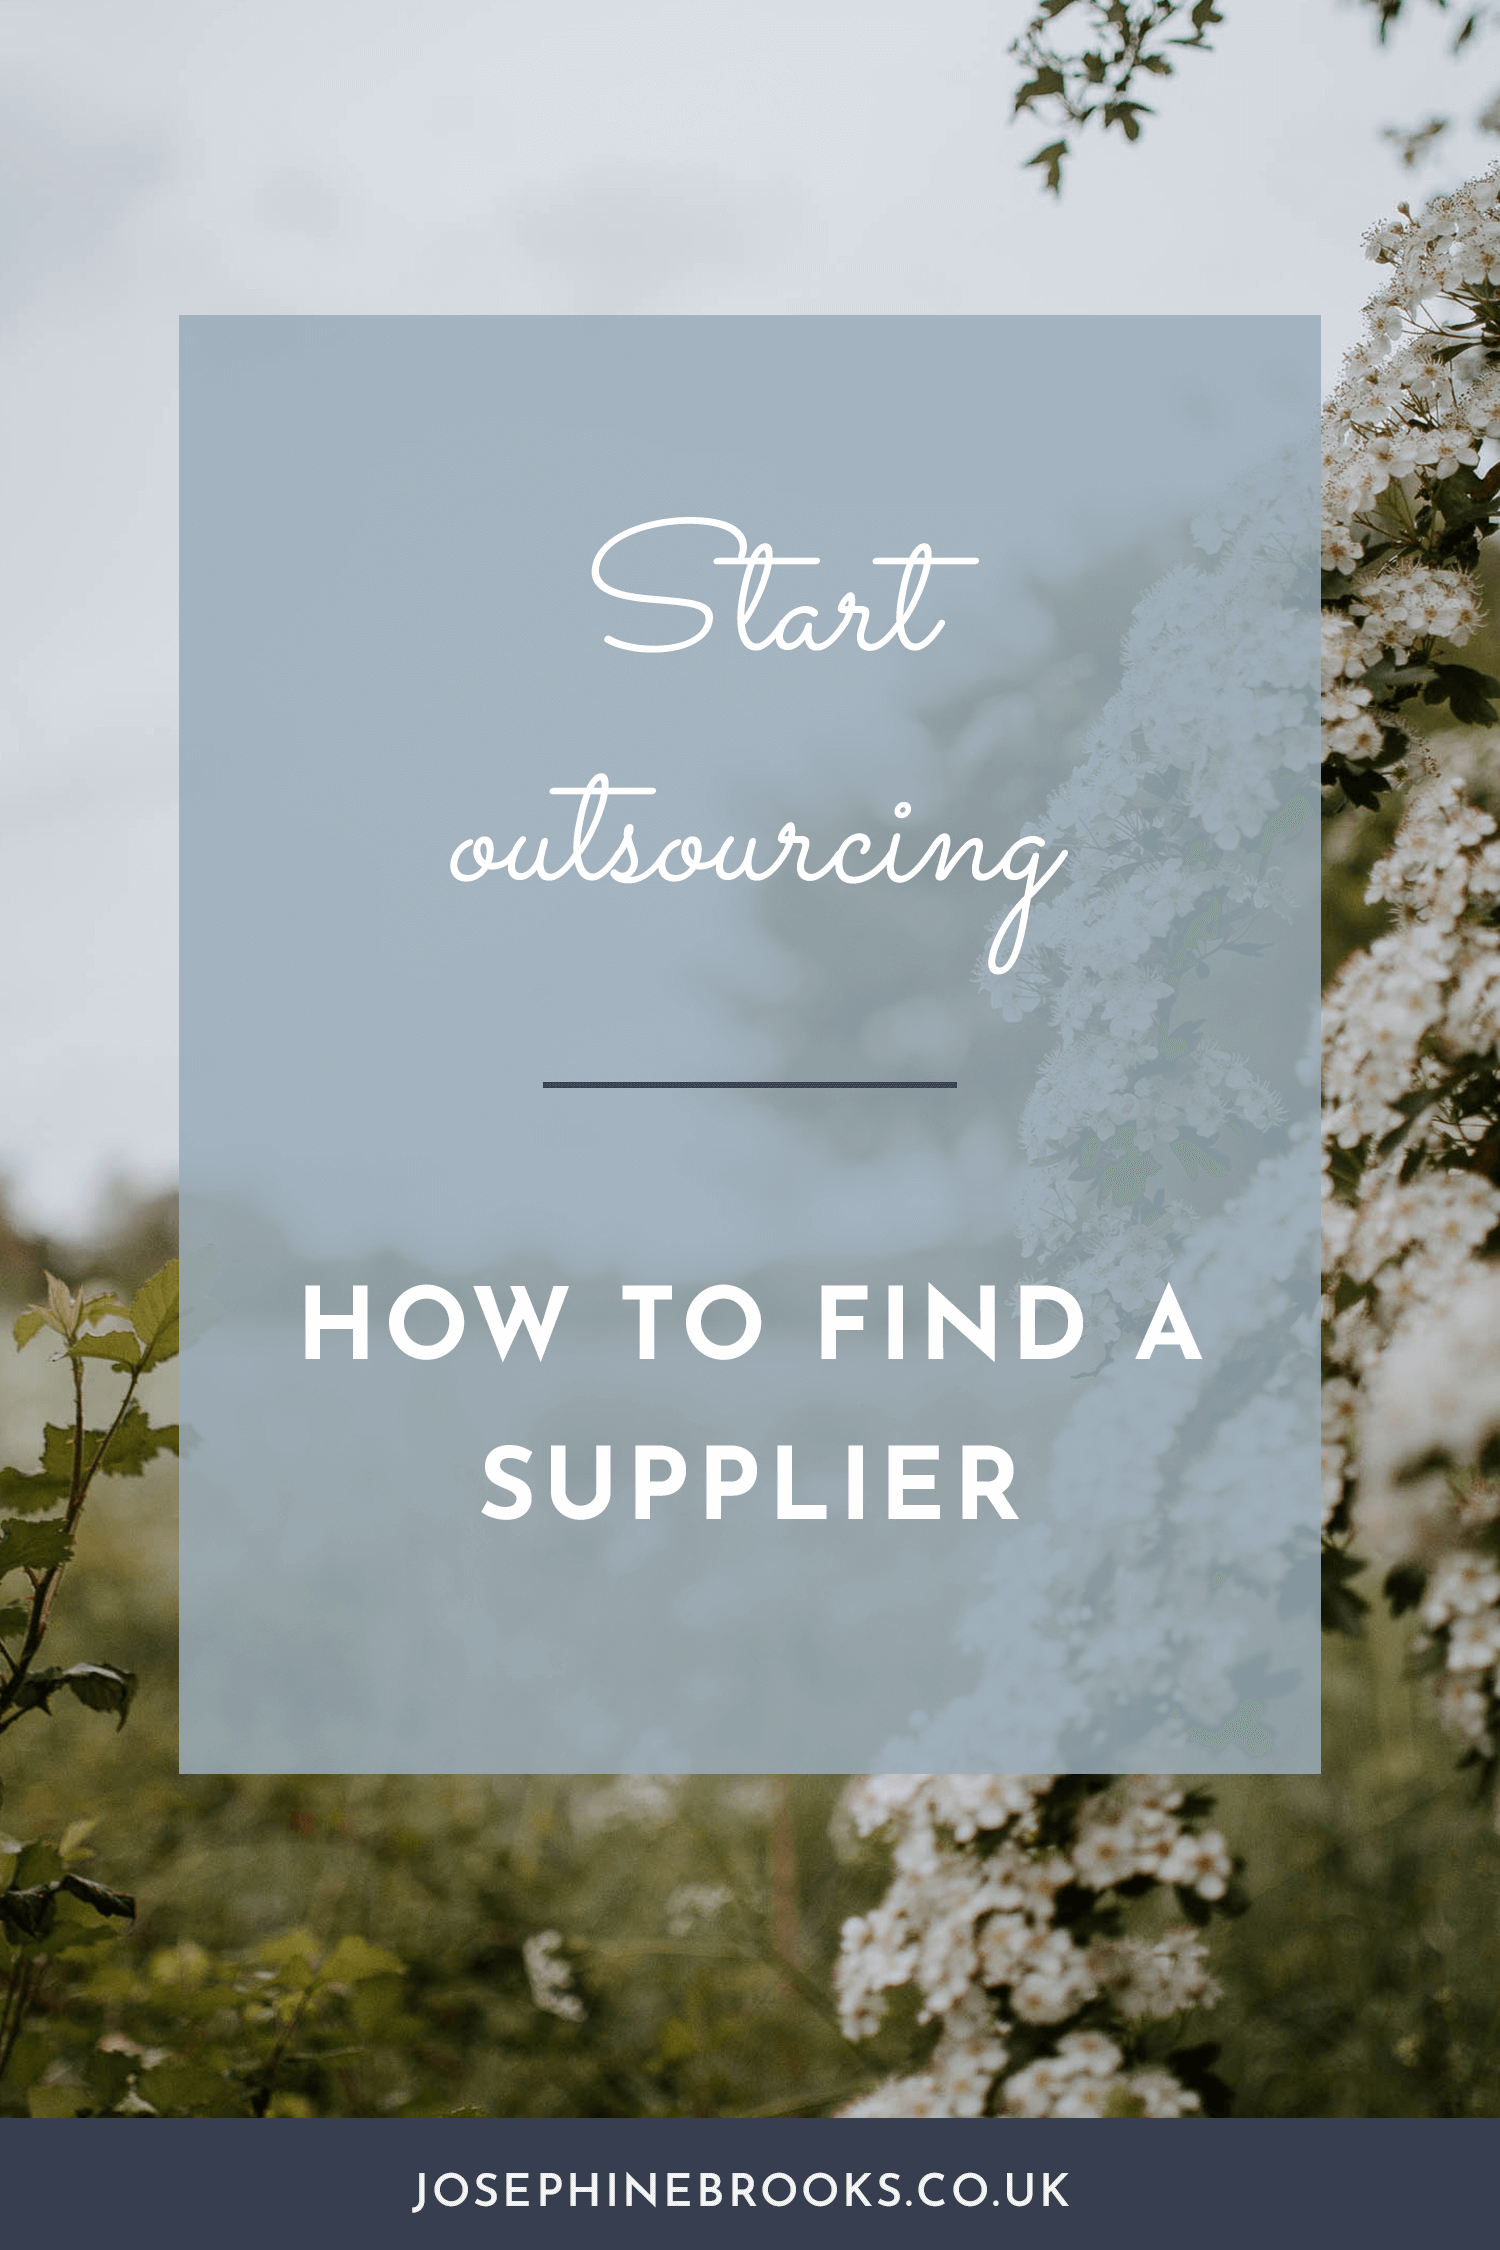 Where you can be outsourcing in you creative business, how to find a supplier for your outsourcing, Where you can be outsourcing in you creative business, how to find a supplier for your outsourcing | Josephine Brooks